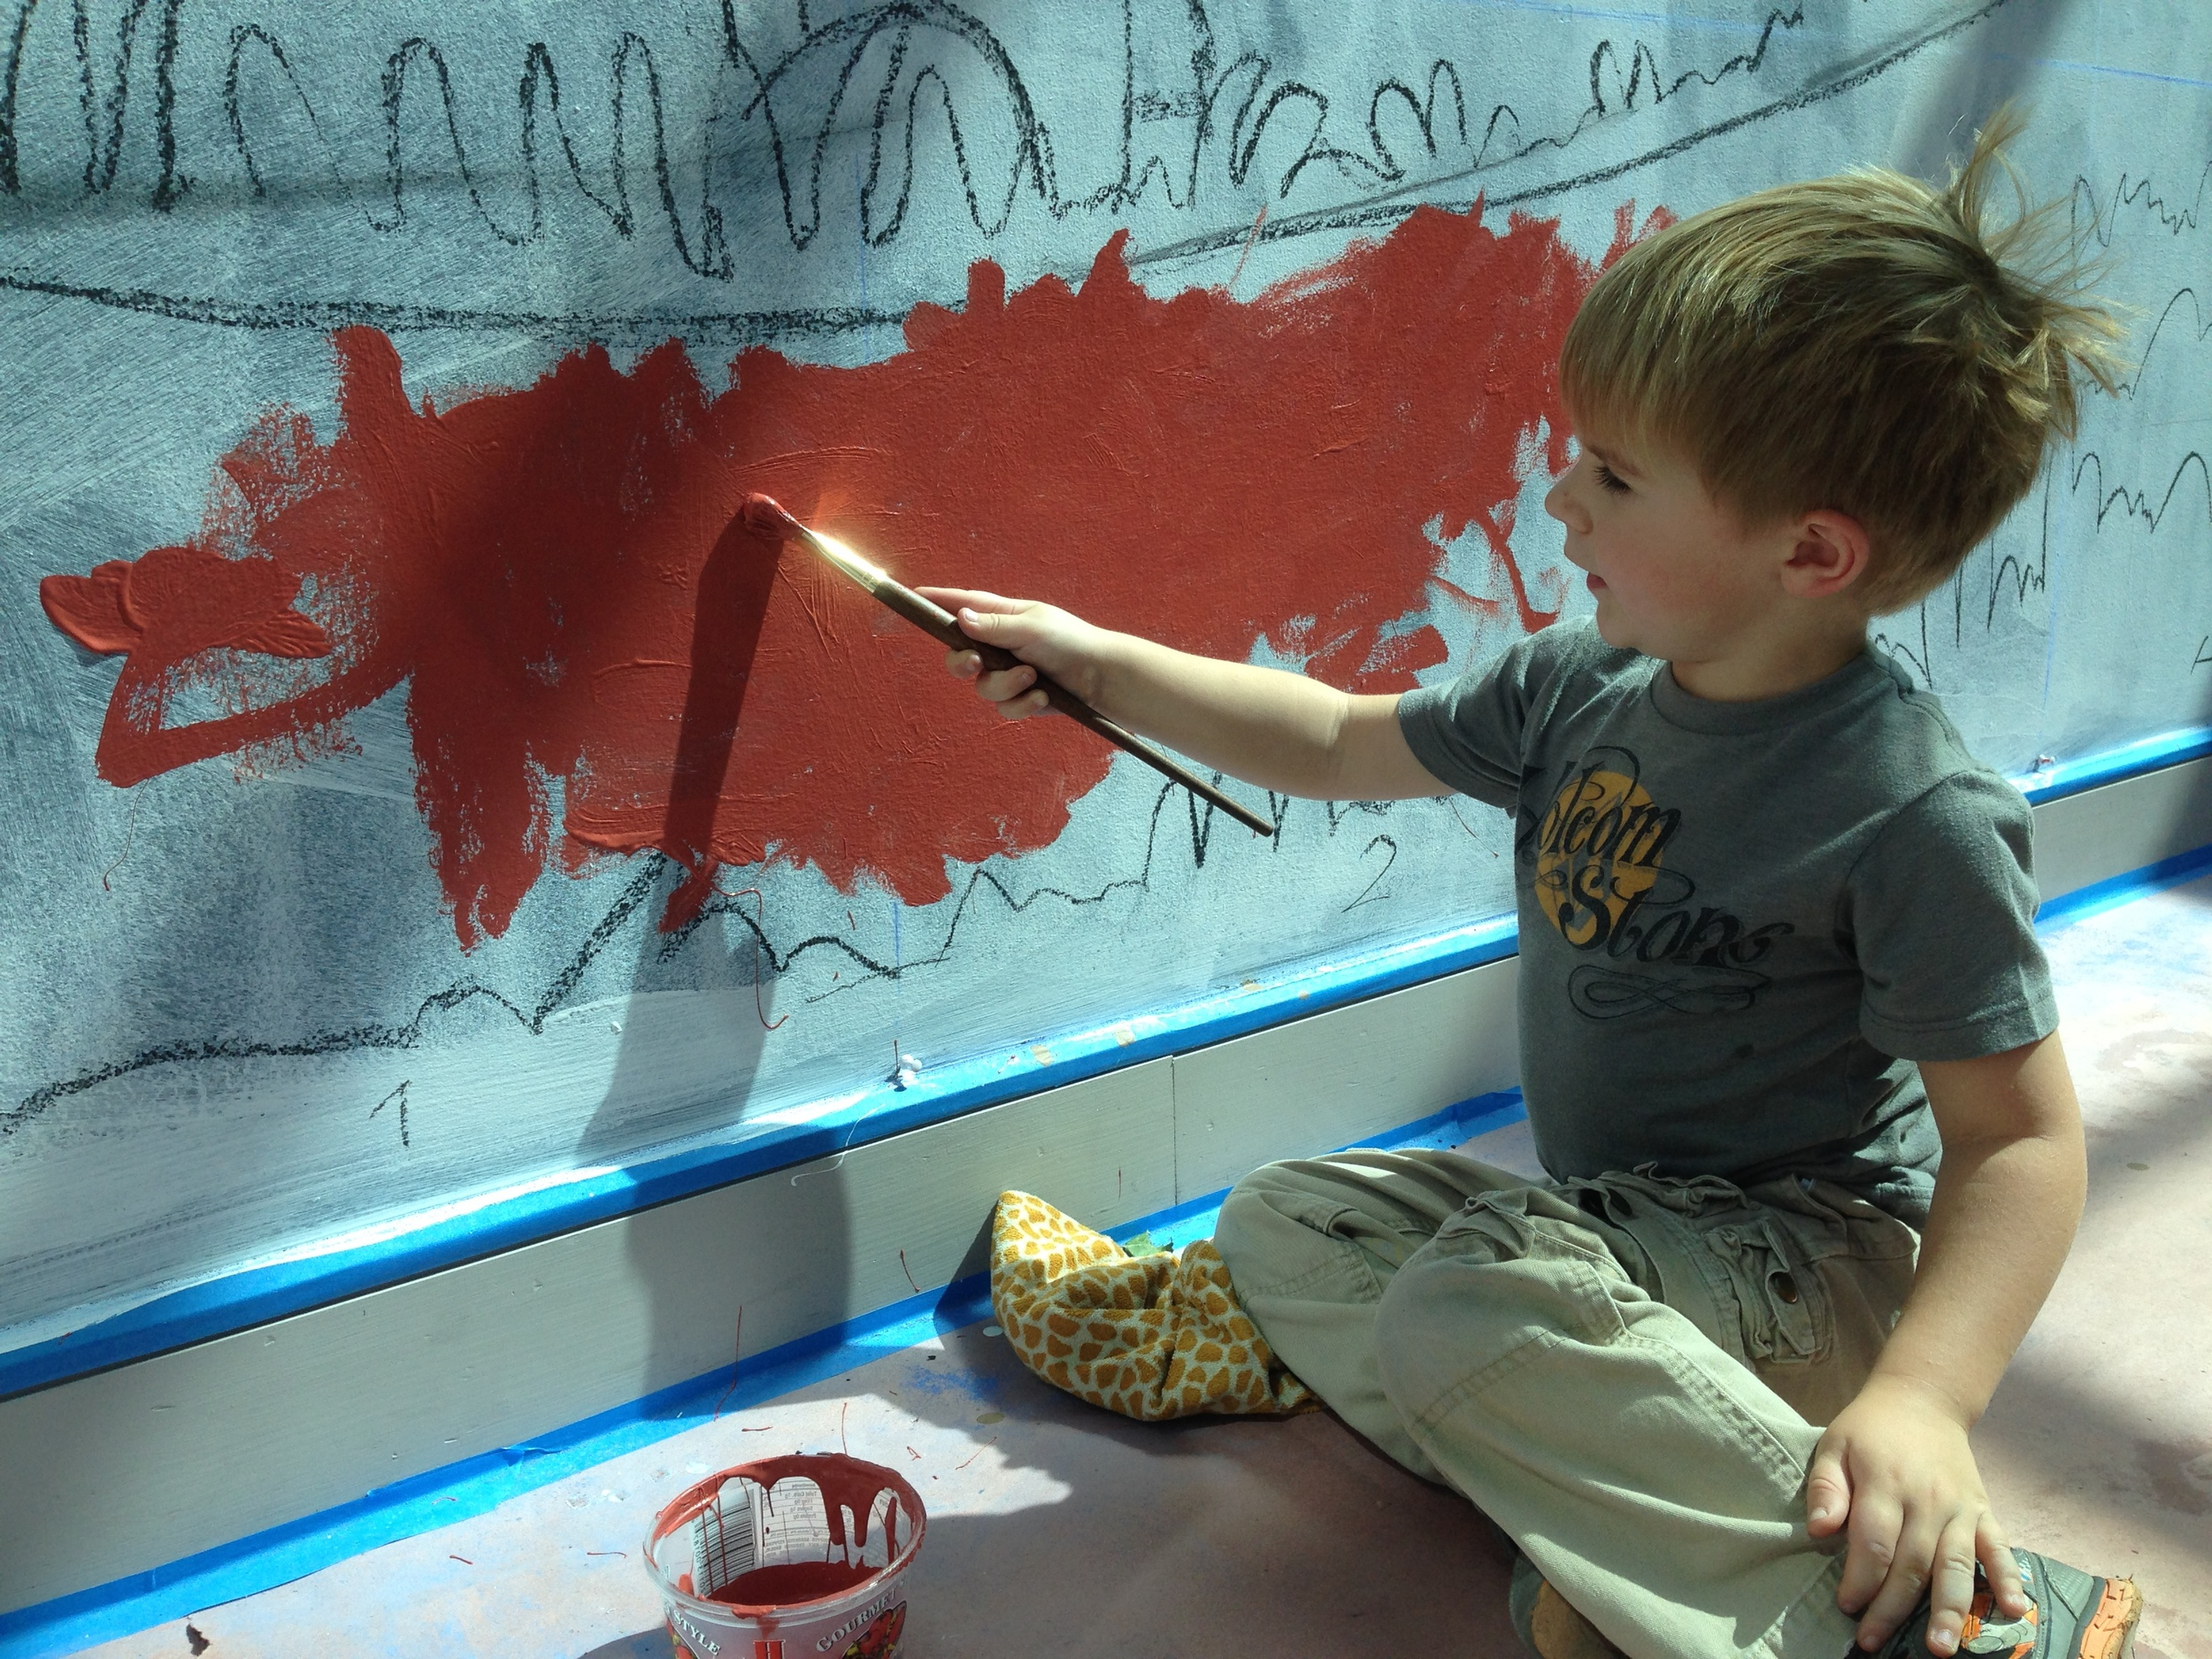 dante, 4, painting the path